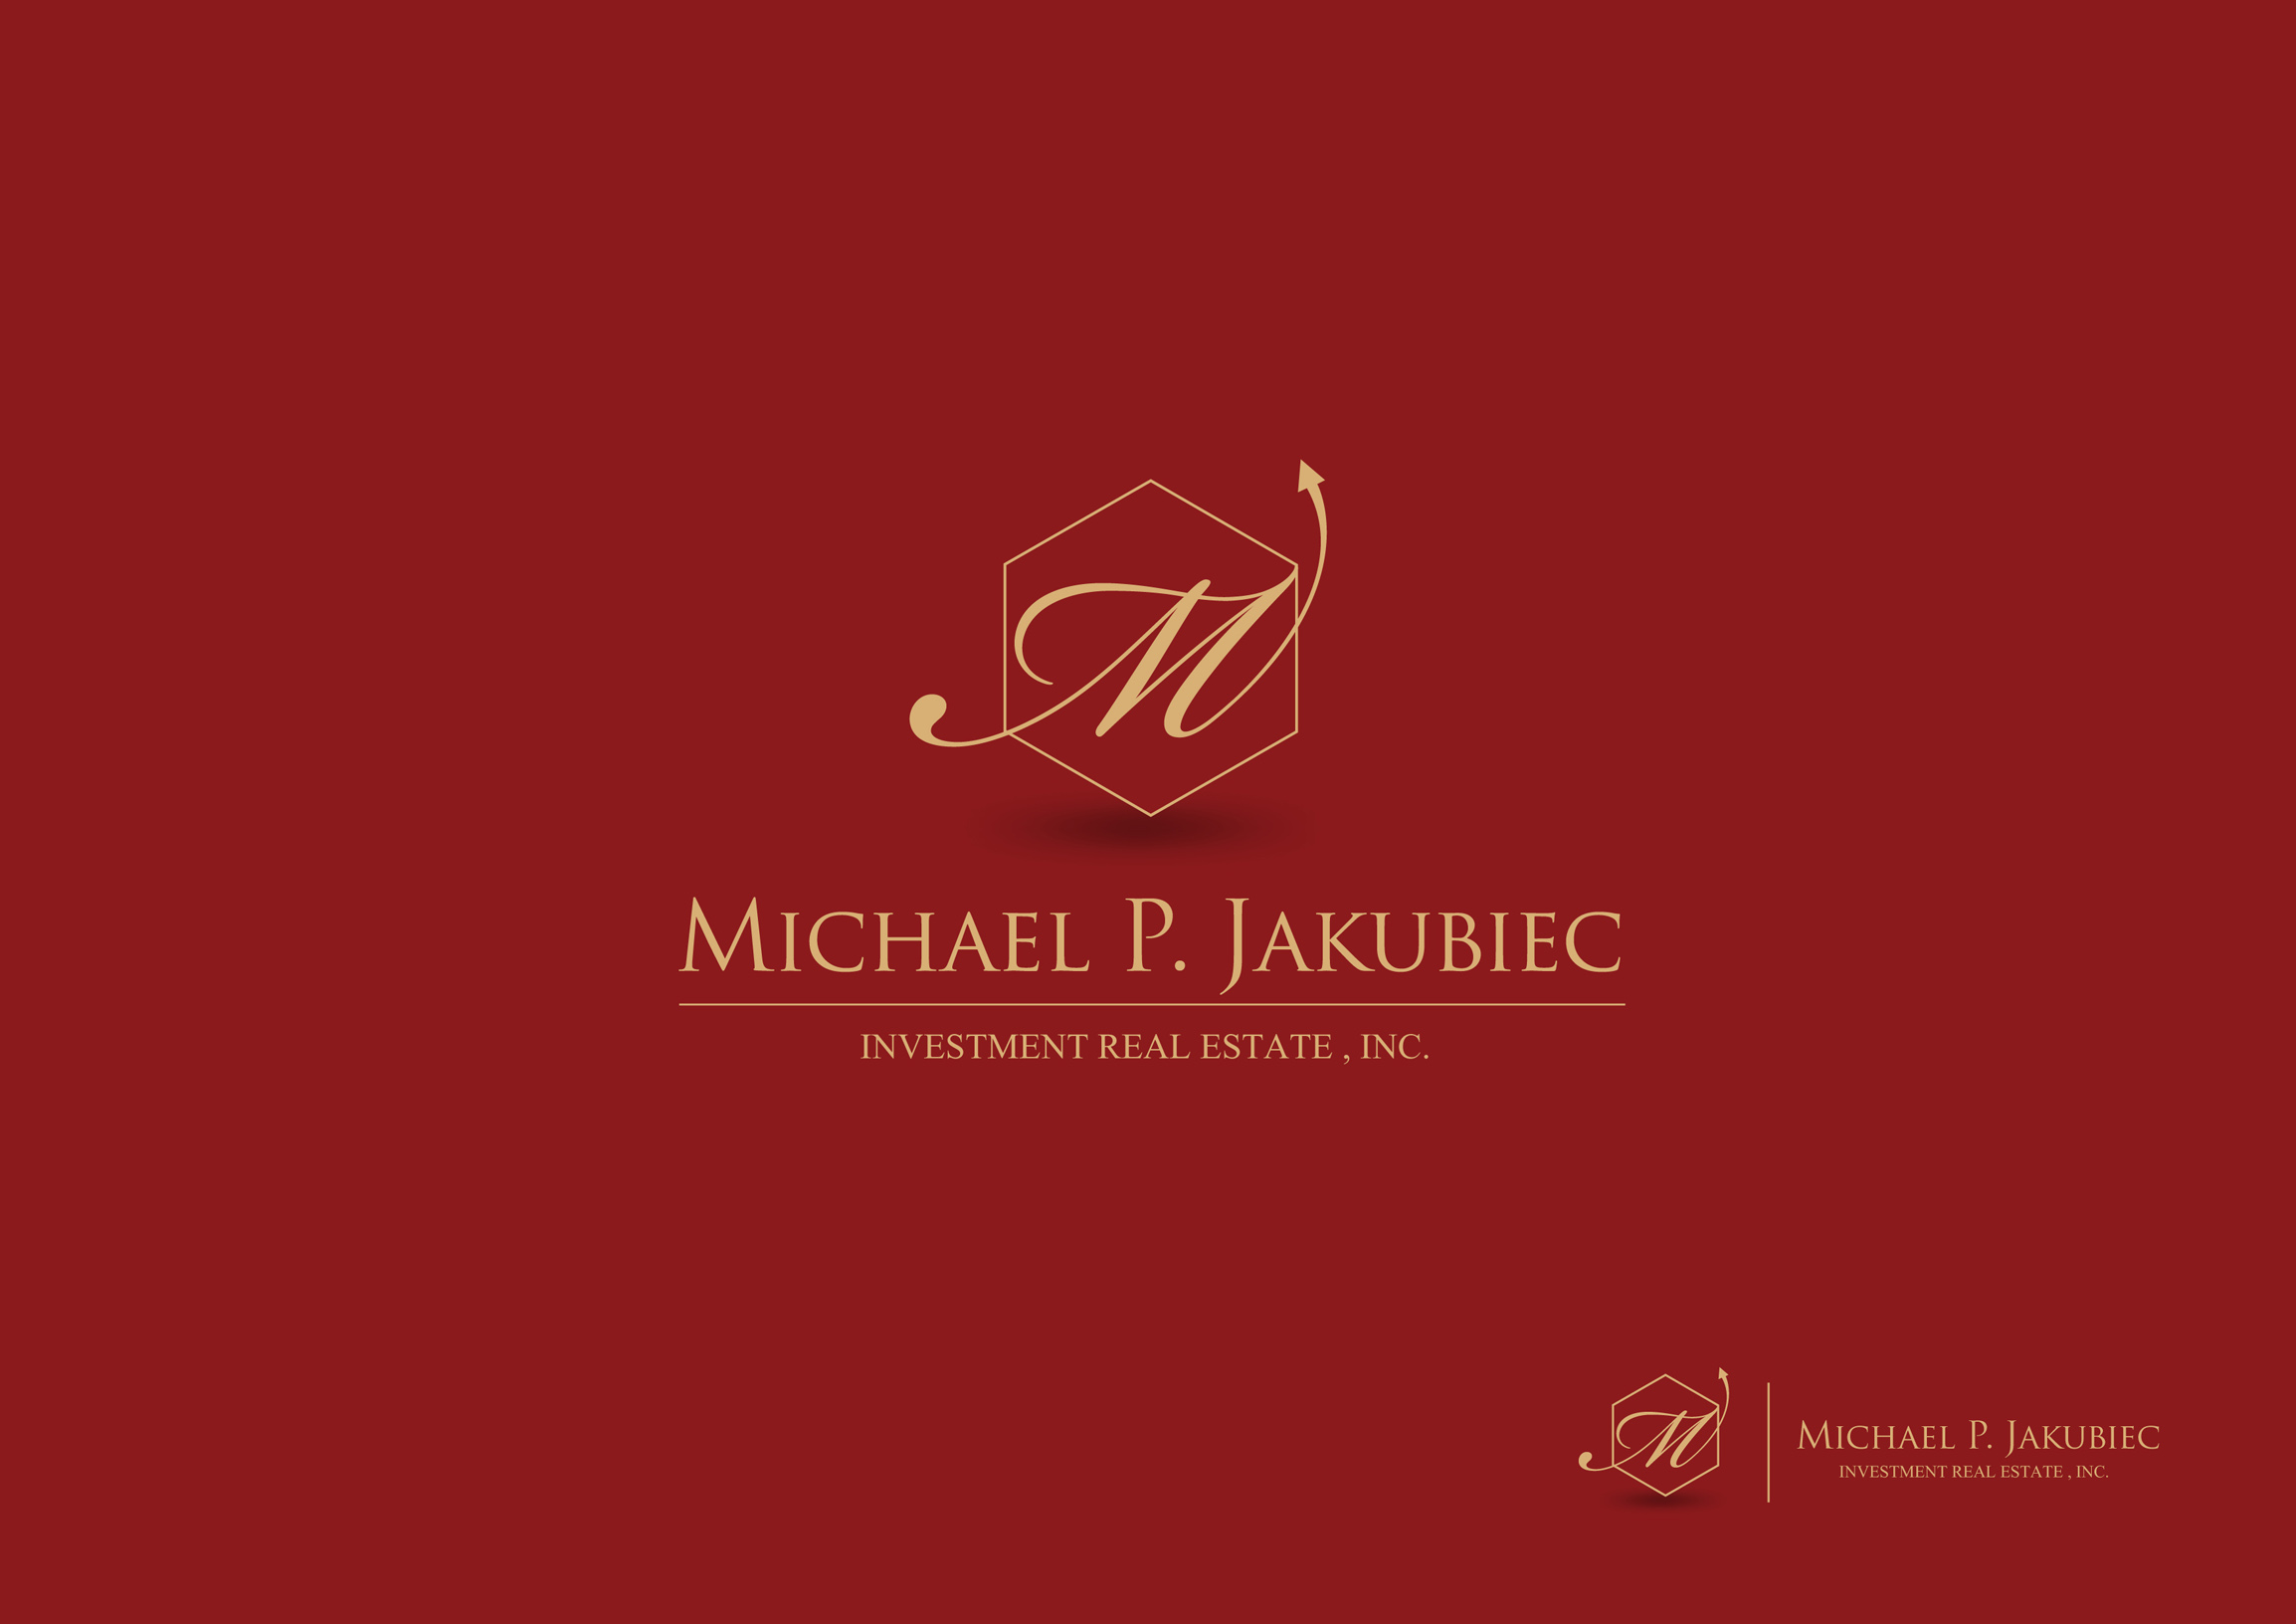 Logo Design by Mark Anthony Moreto Jordan - Entry No. 45 in the Logo Design Contest New Logo Design for Michael P. Jakubiec Investment Real Estate, Inc..